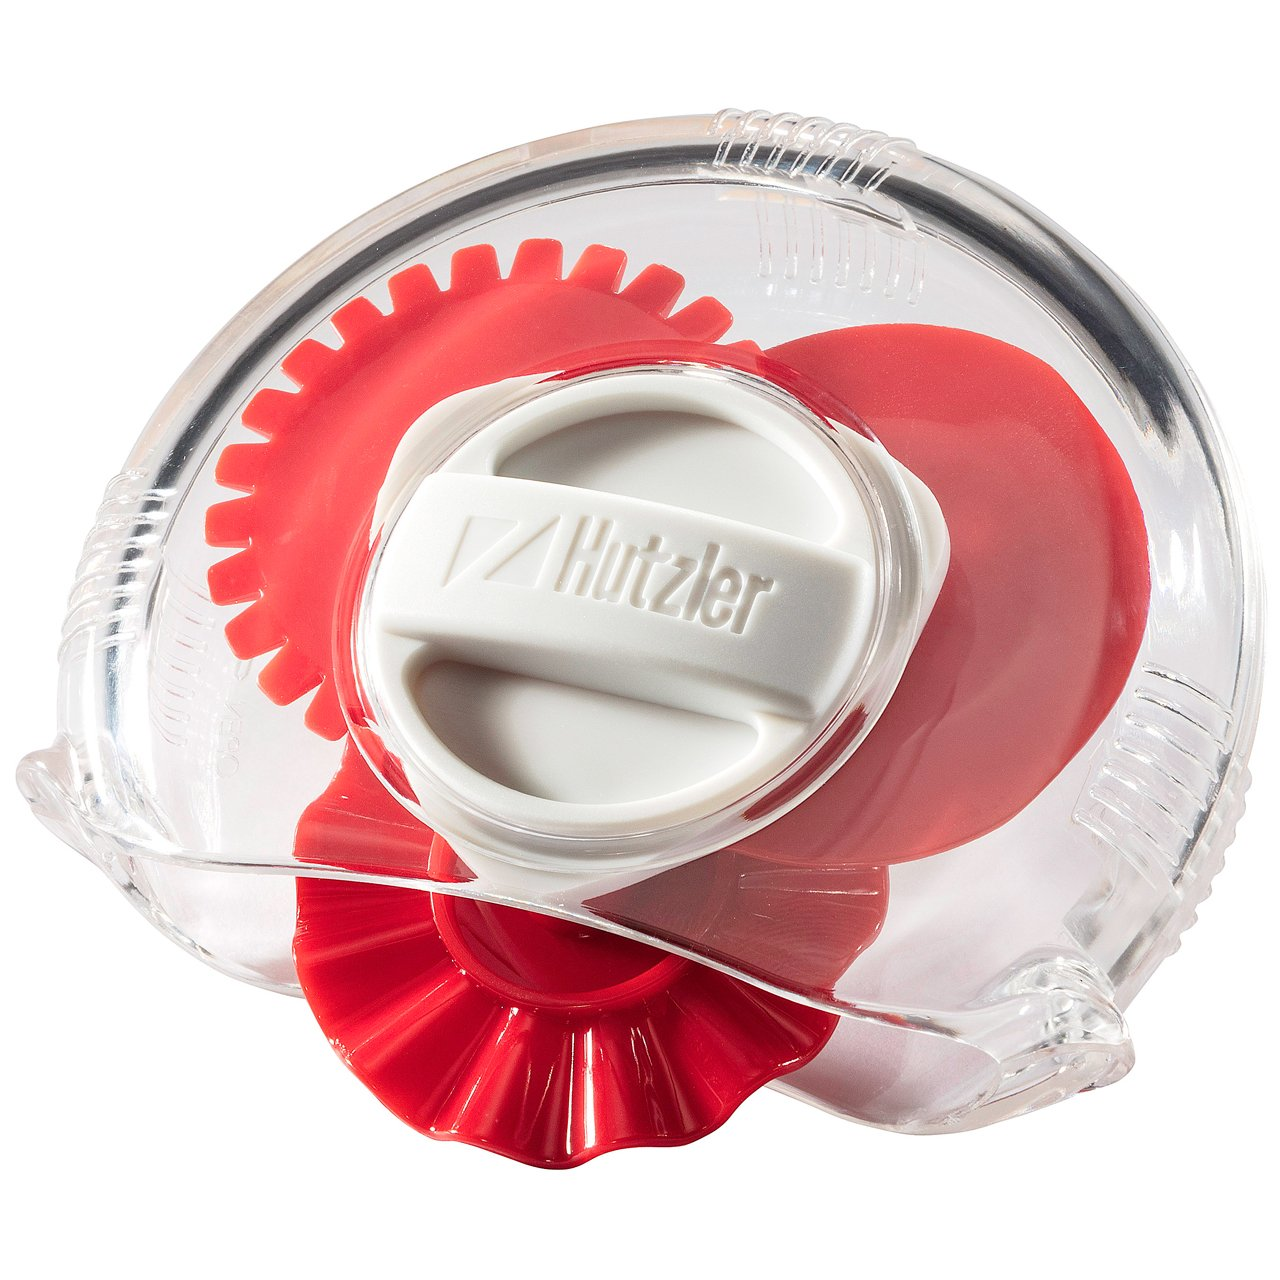 Hutzler 3856RD Adjustable Pastry Wheel, One Size, Red by Hutzler